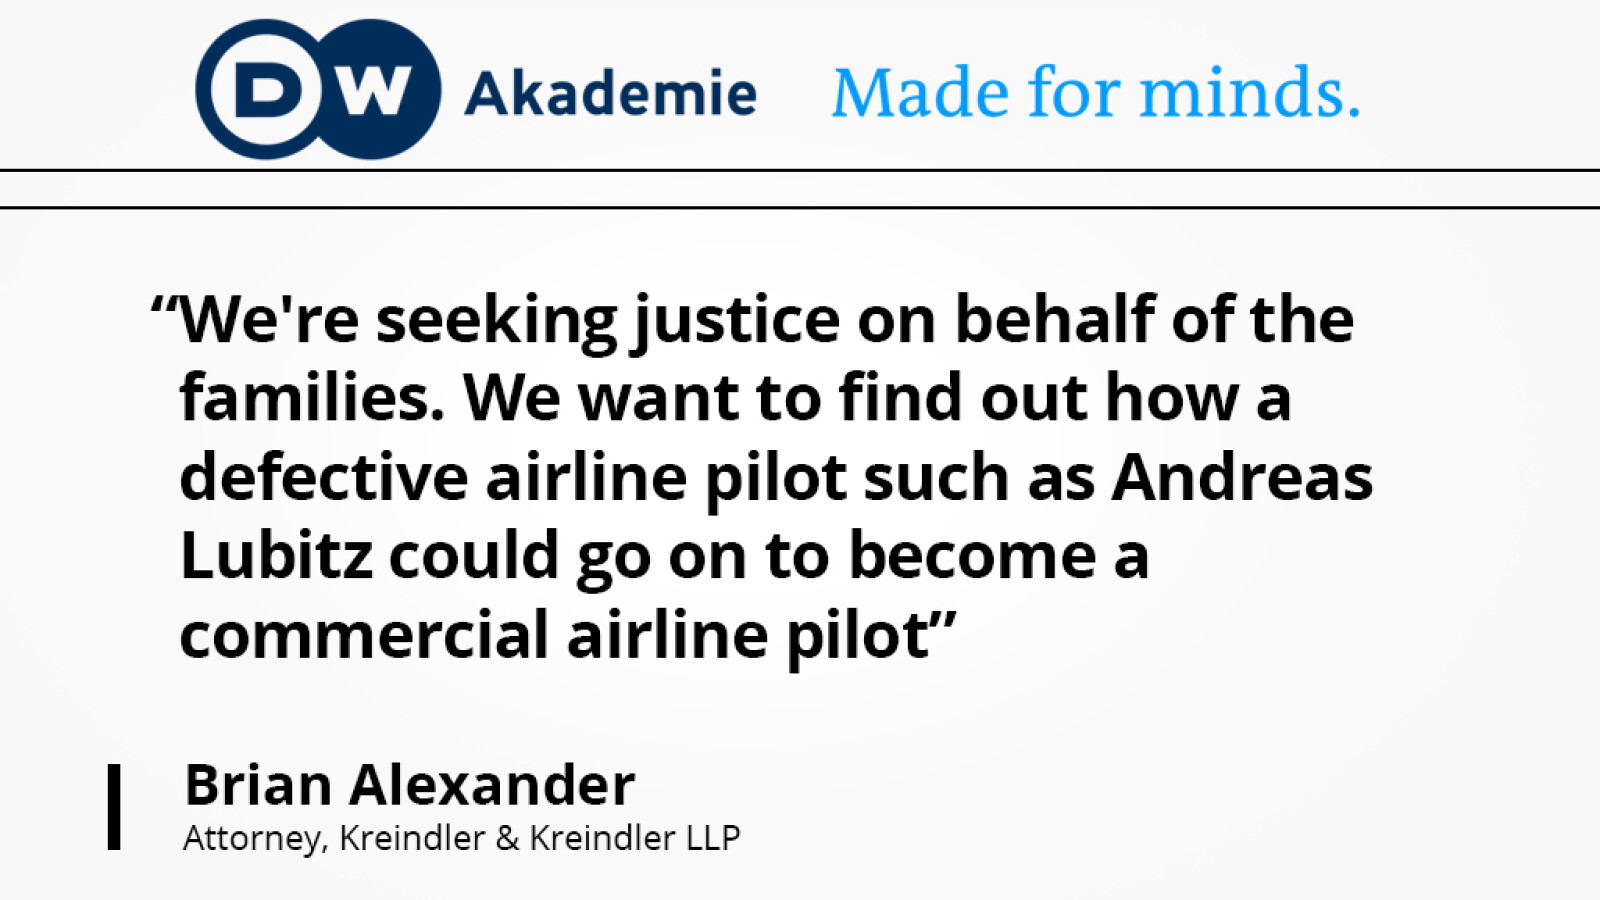 Partner and aviation attorney Brian Alexander speaks with DW Akademie regarding the Germanwings tragedy